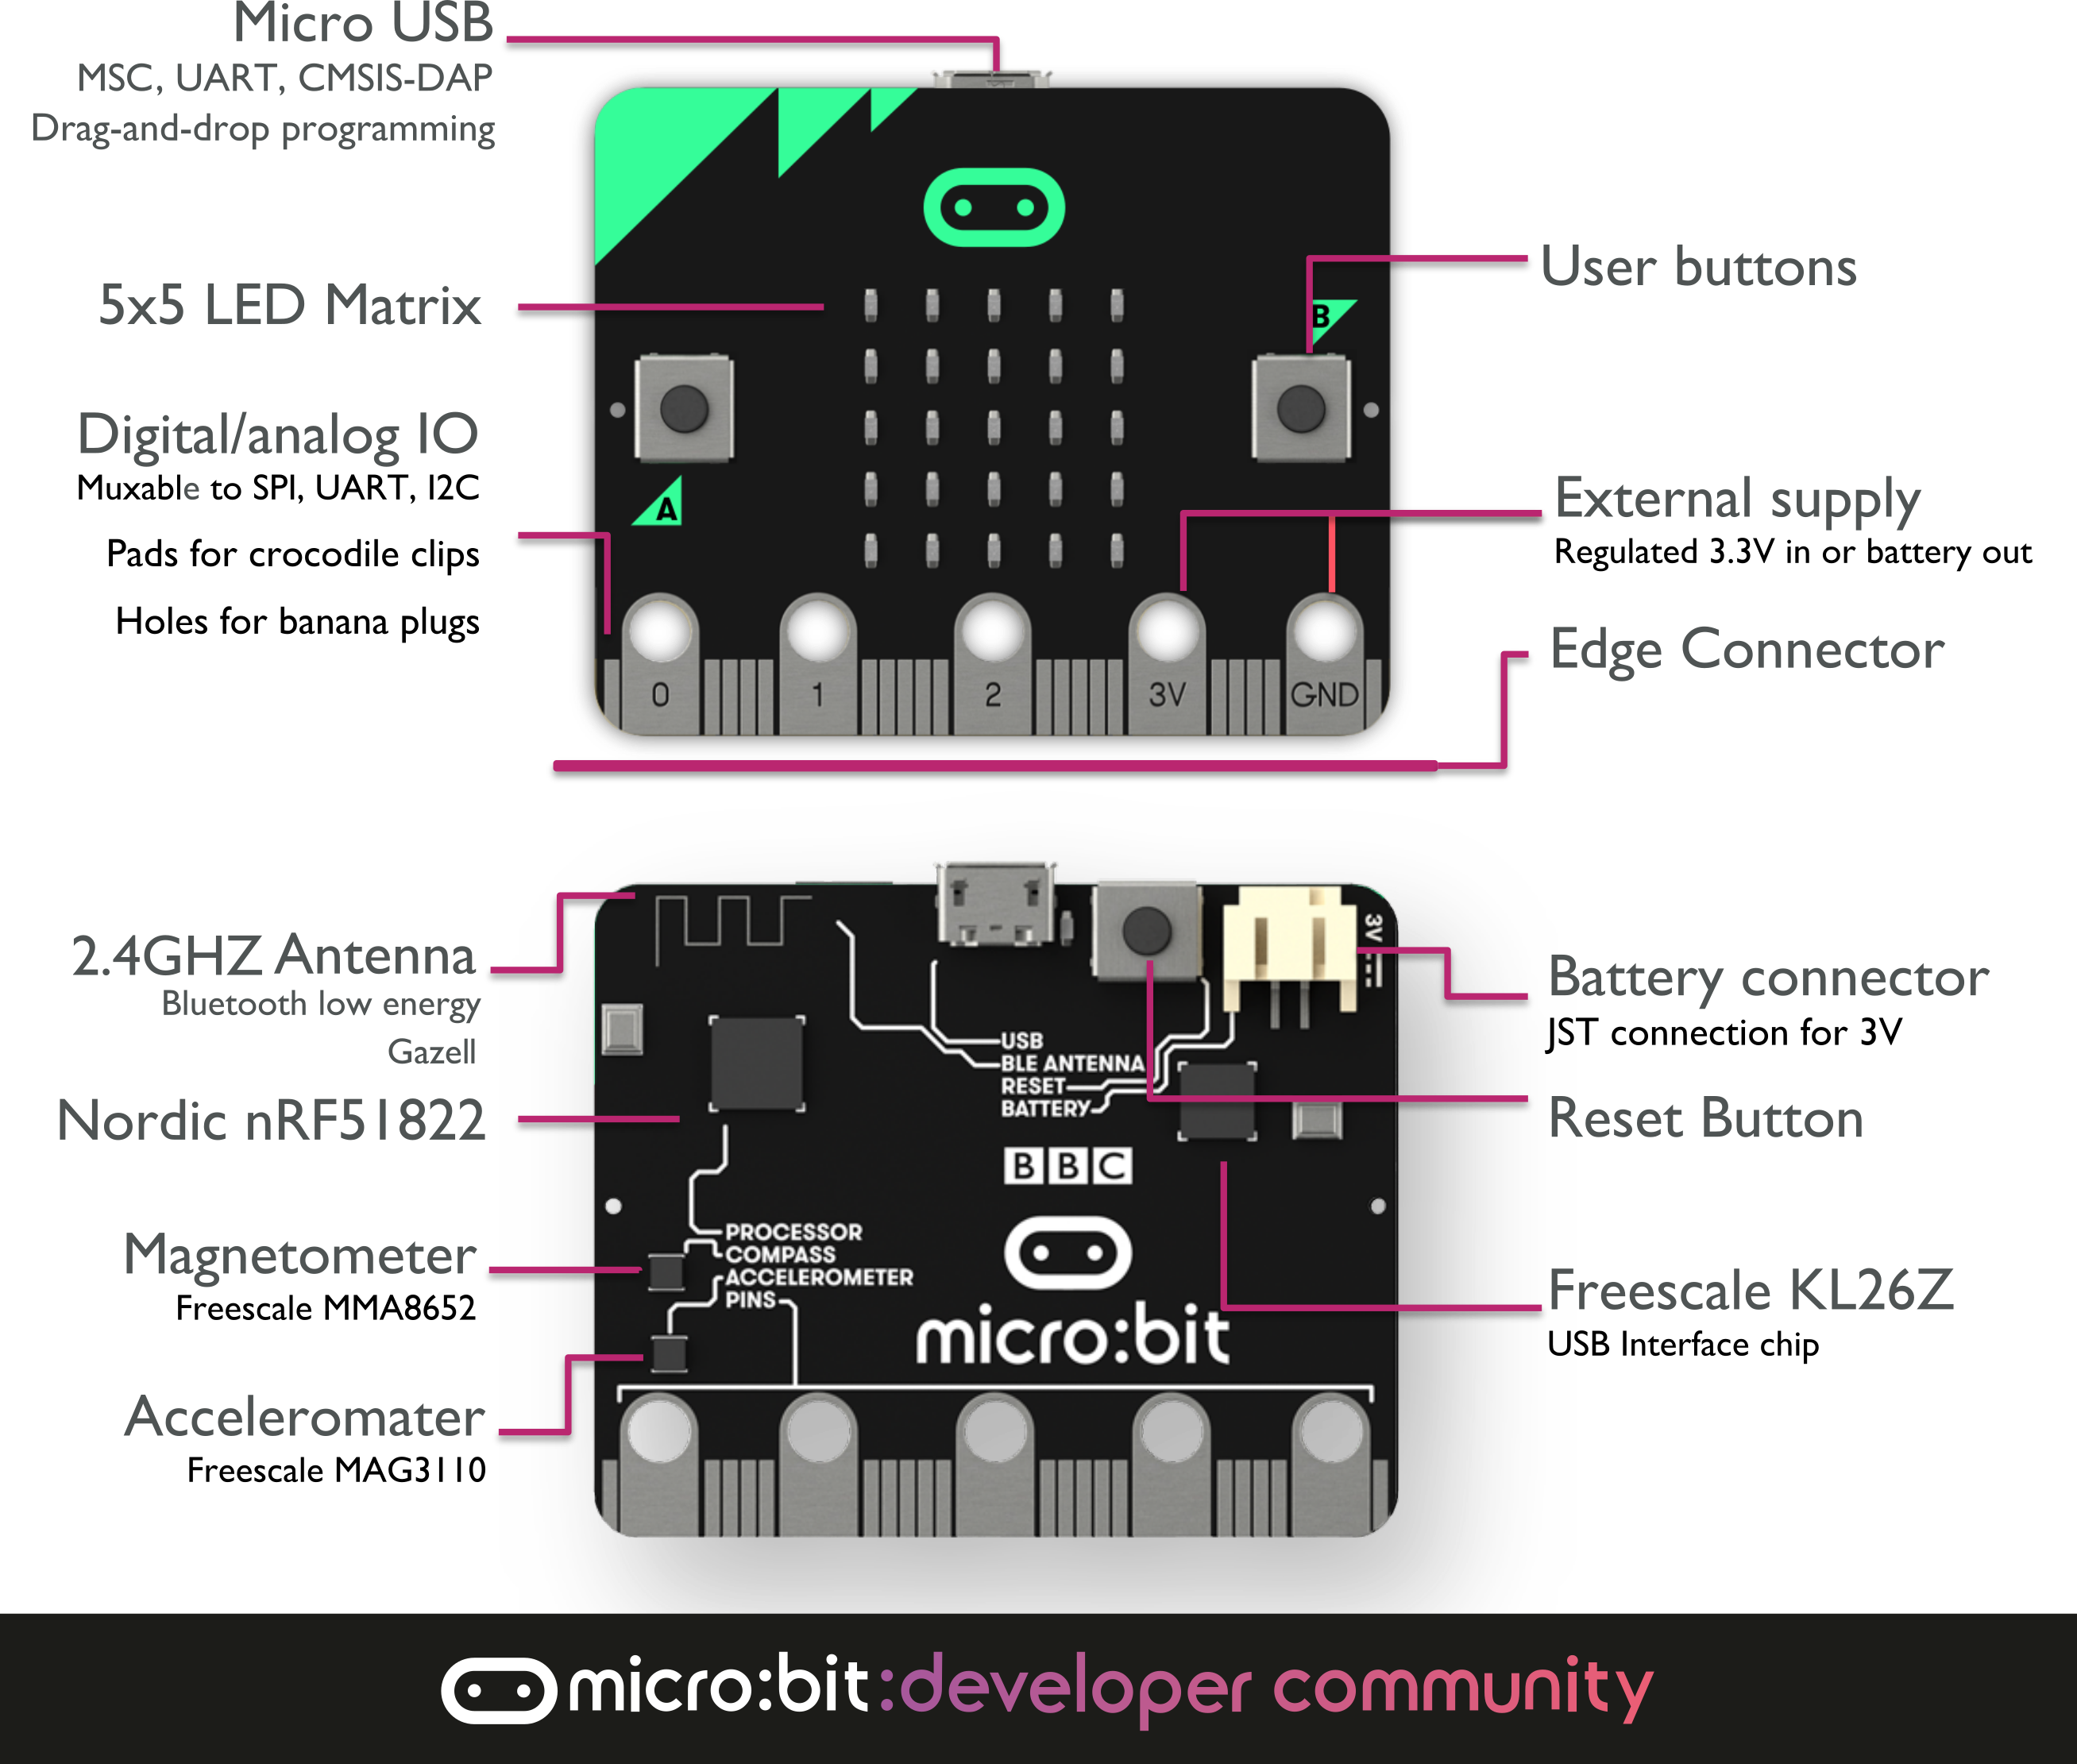 Microbit overview adwg6wdhj5